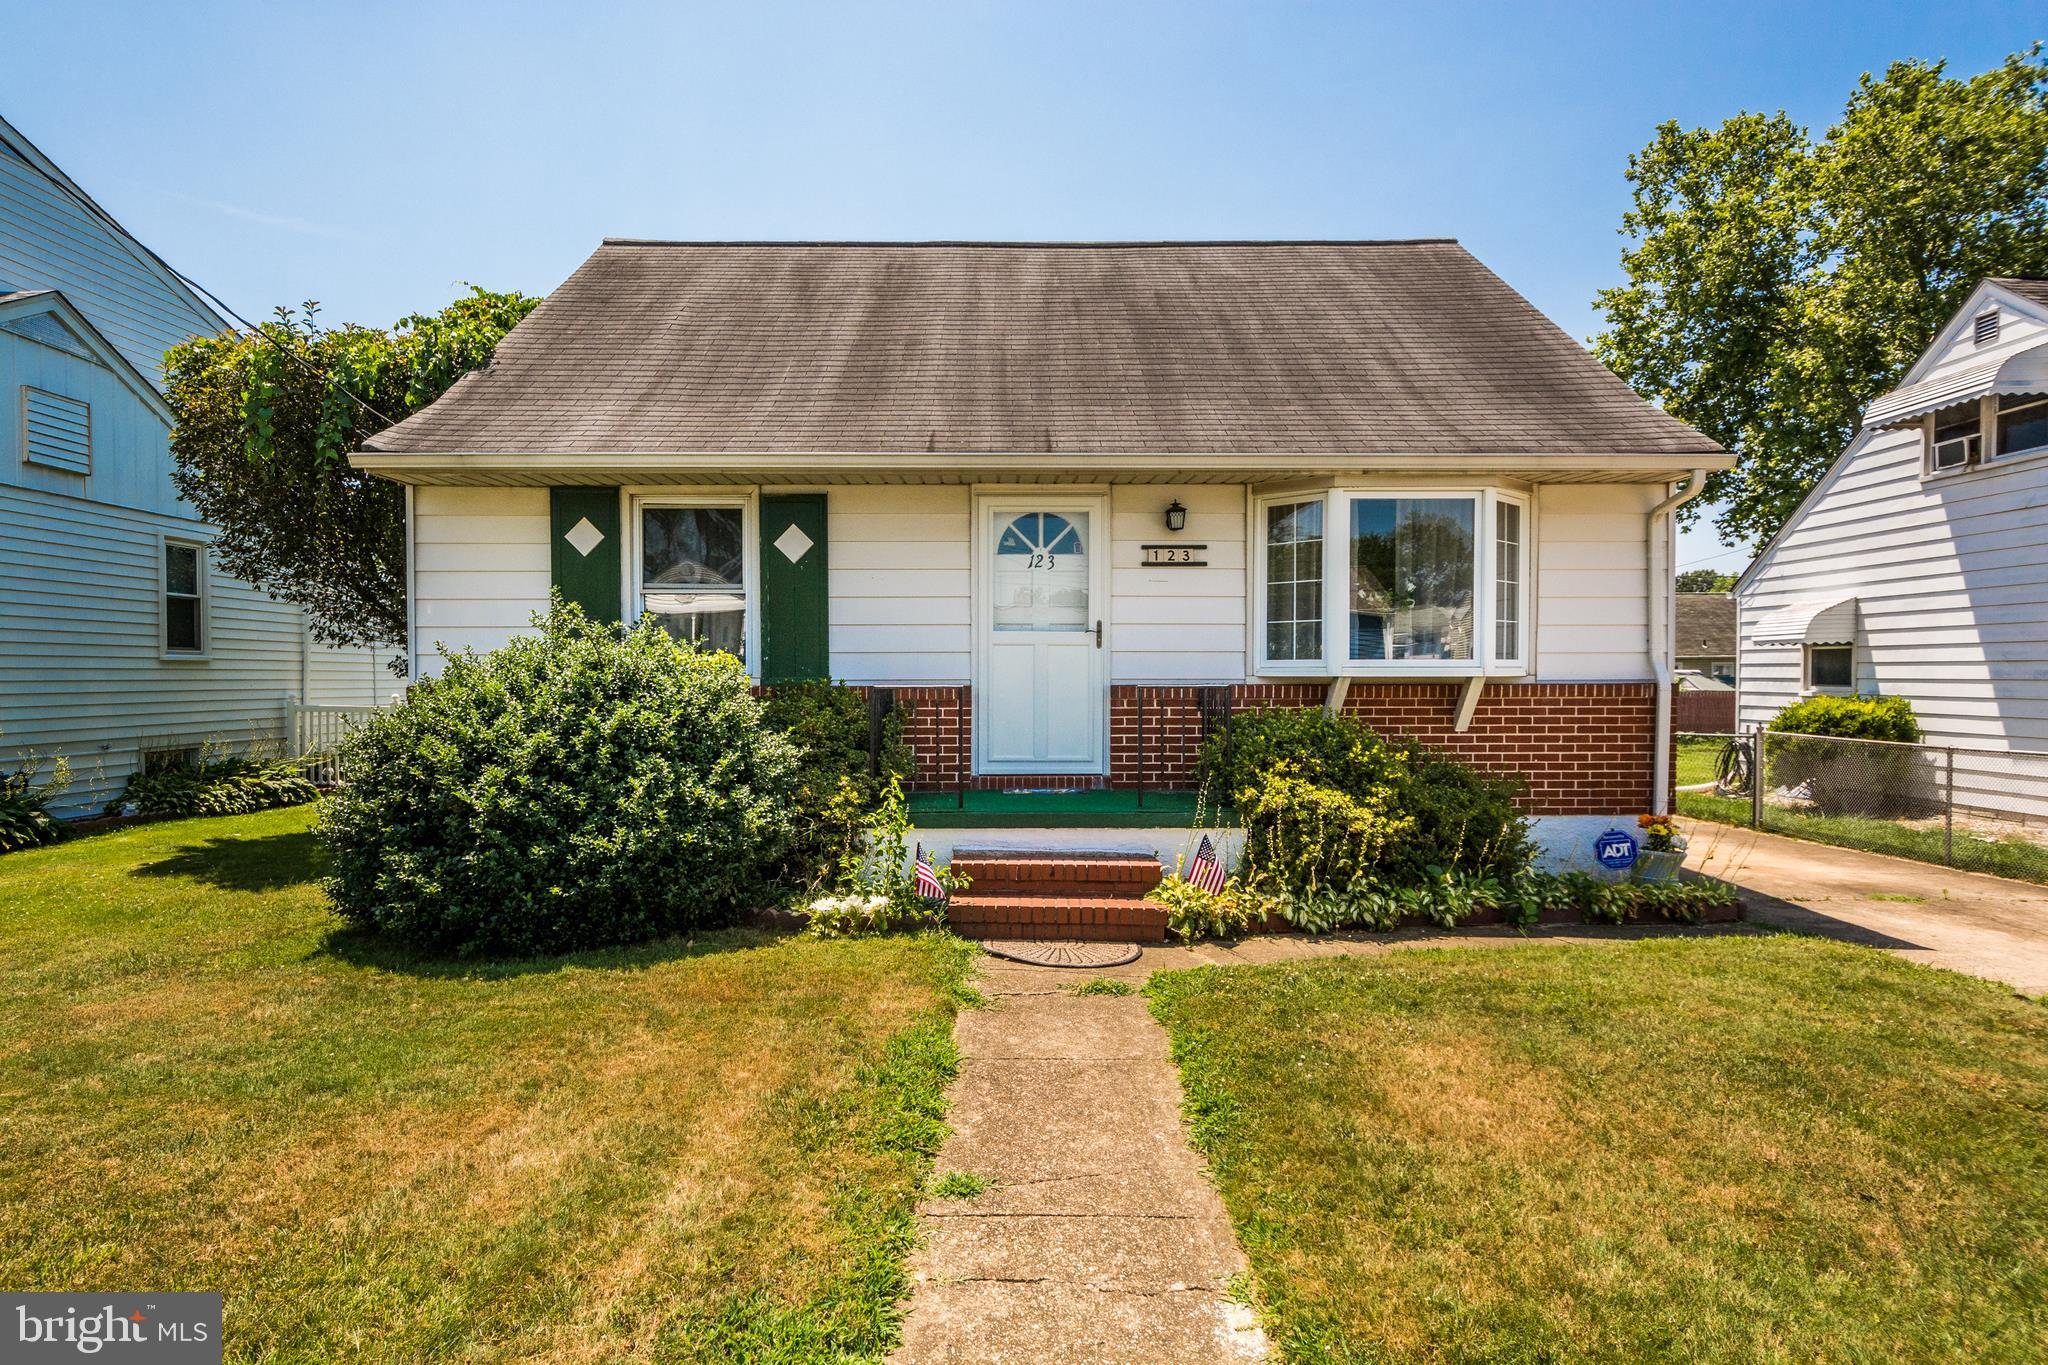 3BR/2.5BA CAPE COD.  WELL MAINTAINED BY THE ORIGINAL OWNERS.  MAIN LEVEL BOASTS  SPACIOUS EAT-IN KITCHEN, SEPARATE DINING ROOM, LIVING ROOM,  BEDROOM, FULL BATHROOM & HARDWOODS.  TONS OF NATURAL LIGHT, CLOSETS &  STORAGE THROUGHOUT.  2 BEDROOMS & FULL BATH ON UPPER LEVEL. YOU WILL LOVE THE LARGE FAMILY ROOM IN LOWER LEVEL (POSSIBLE 4TH BEDROOM),  HALF BATH,  CEDAR CLOSET & SEPERATE LAUNDRY/STORAGE ROOM.  SPEND SUMMER DAYS & EVENINGS HANGING OUT IN REAR FENCED YARD w/LOVELY GREENERY  & 'FUN'  CRAB SHACK (WITH SHED ATTACHED).  CUTE PROPERTY LOADED WITH POSSIBILITIES TO CUSTOMIZE AS DESIRED.  PROPERTY IS A GEM & HAS IT ALL!  MAKE THIS HOME 'YOUR' HOME!!!  CLOSE TO SHOPPING, RESTAURANTS, EASY ACCESS TO 695, 95, 97 & MORE! Call for a Tour Today! Property Sold As-Is.